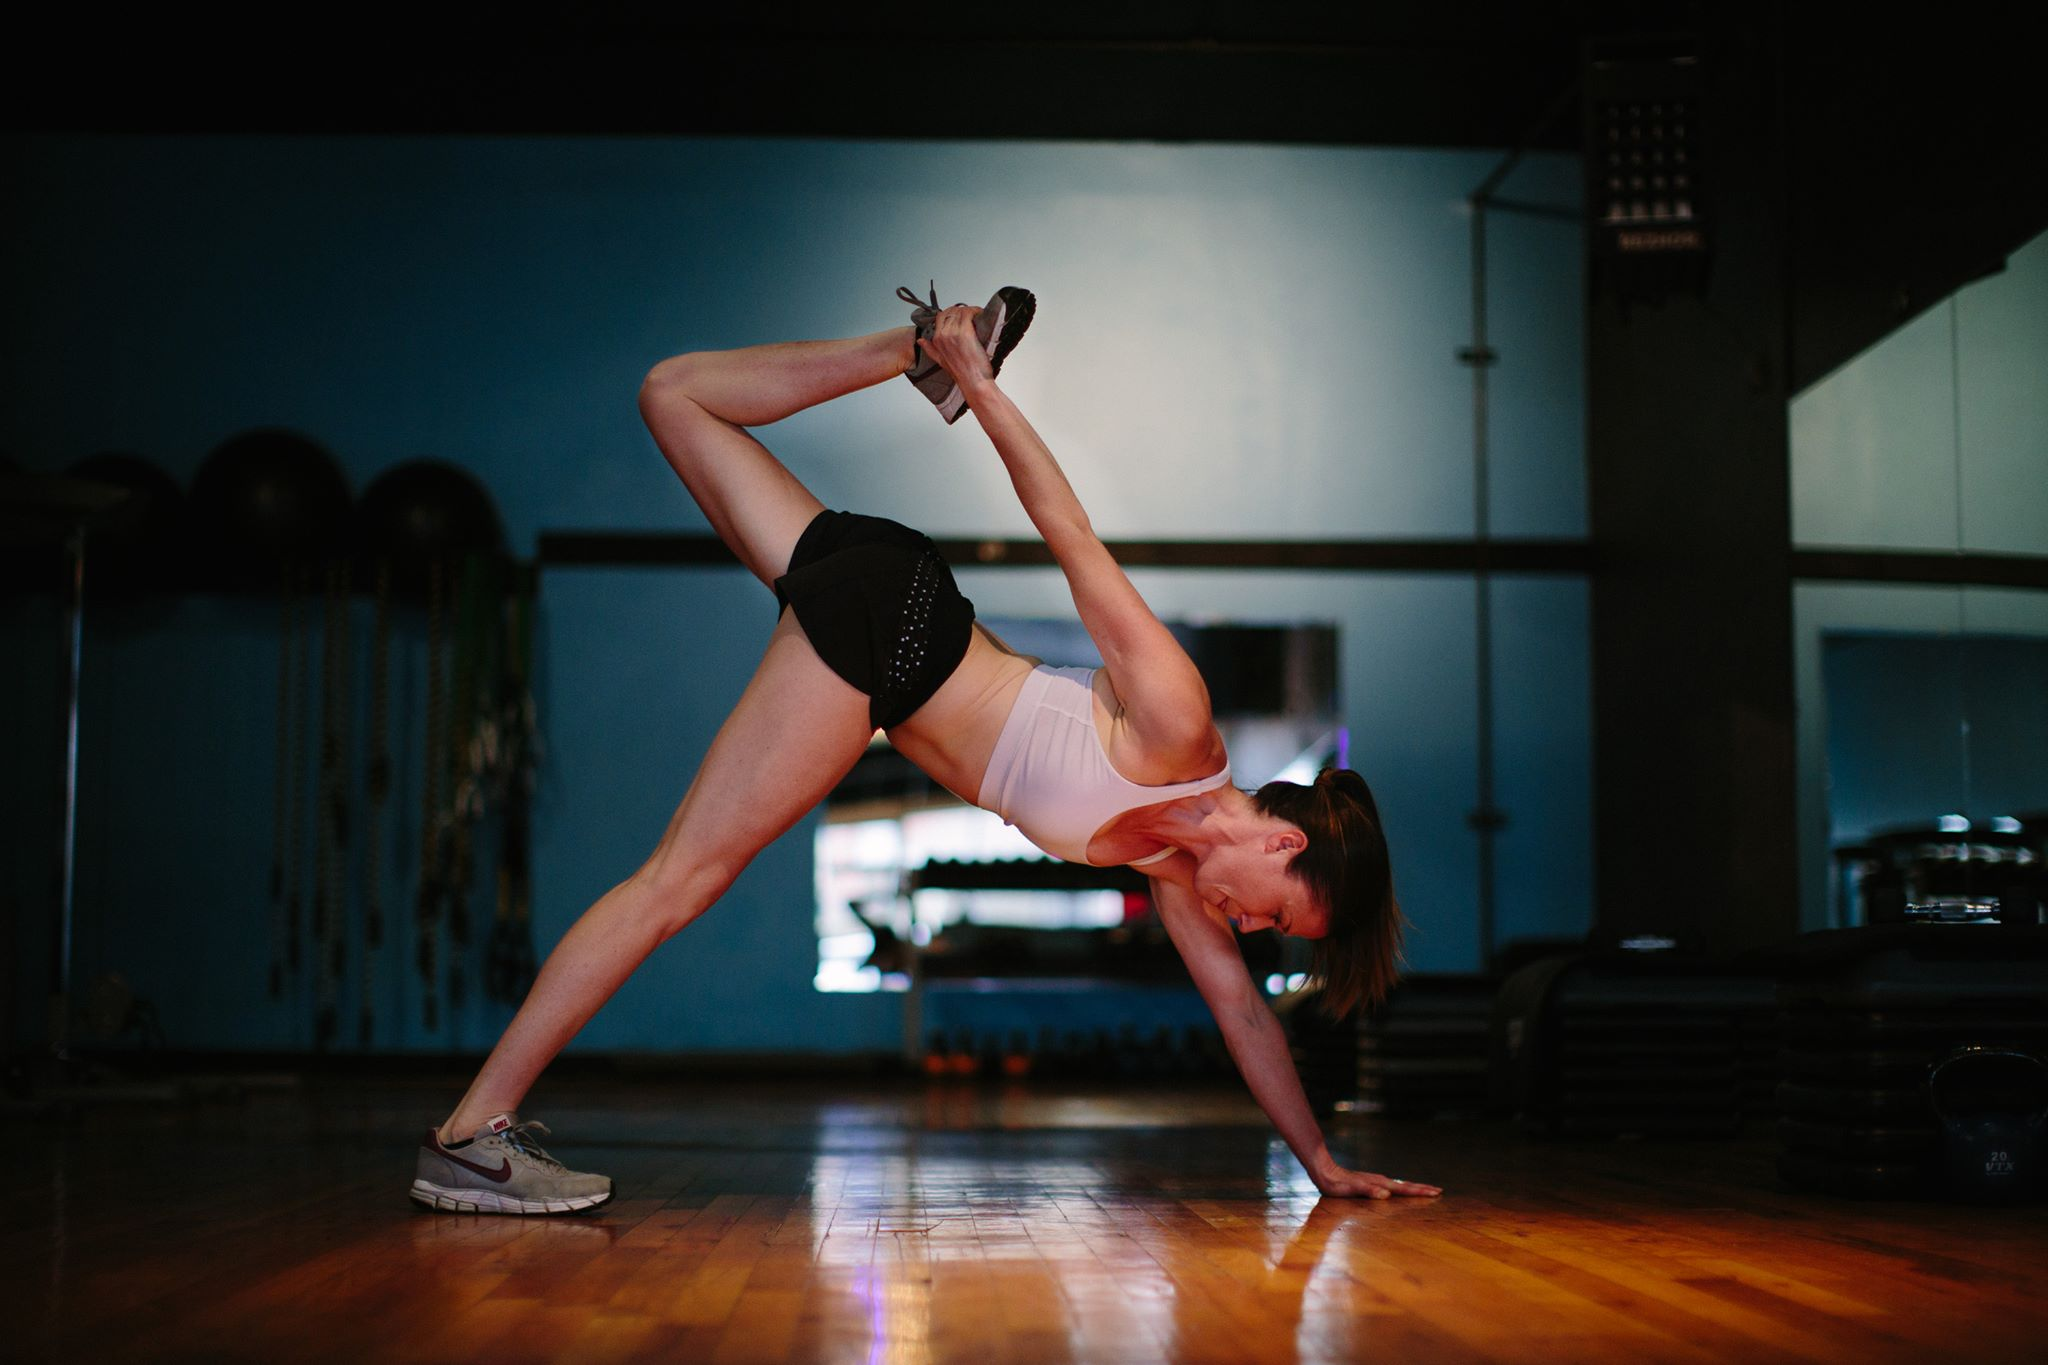 Trainer Shares Her Secret to a Better Body